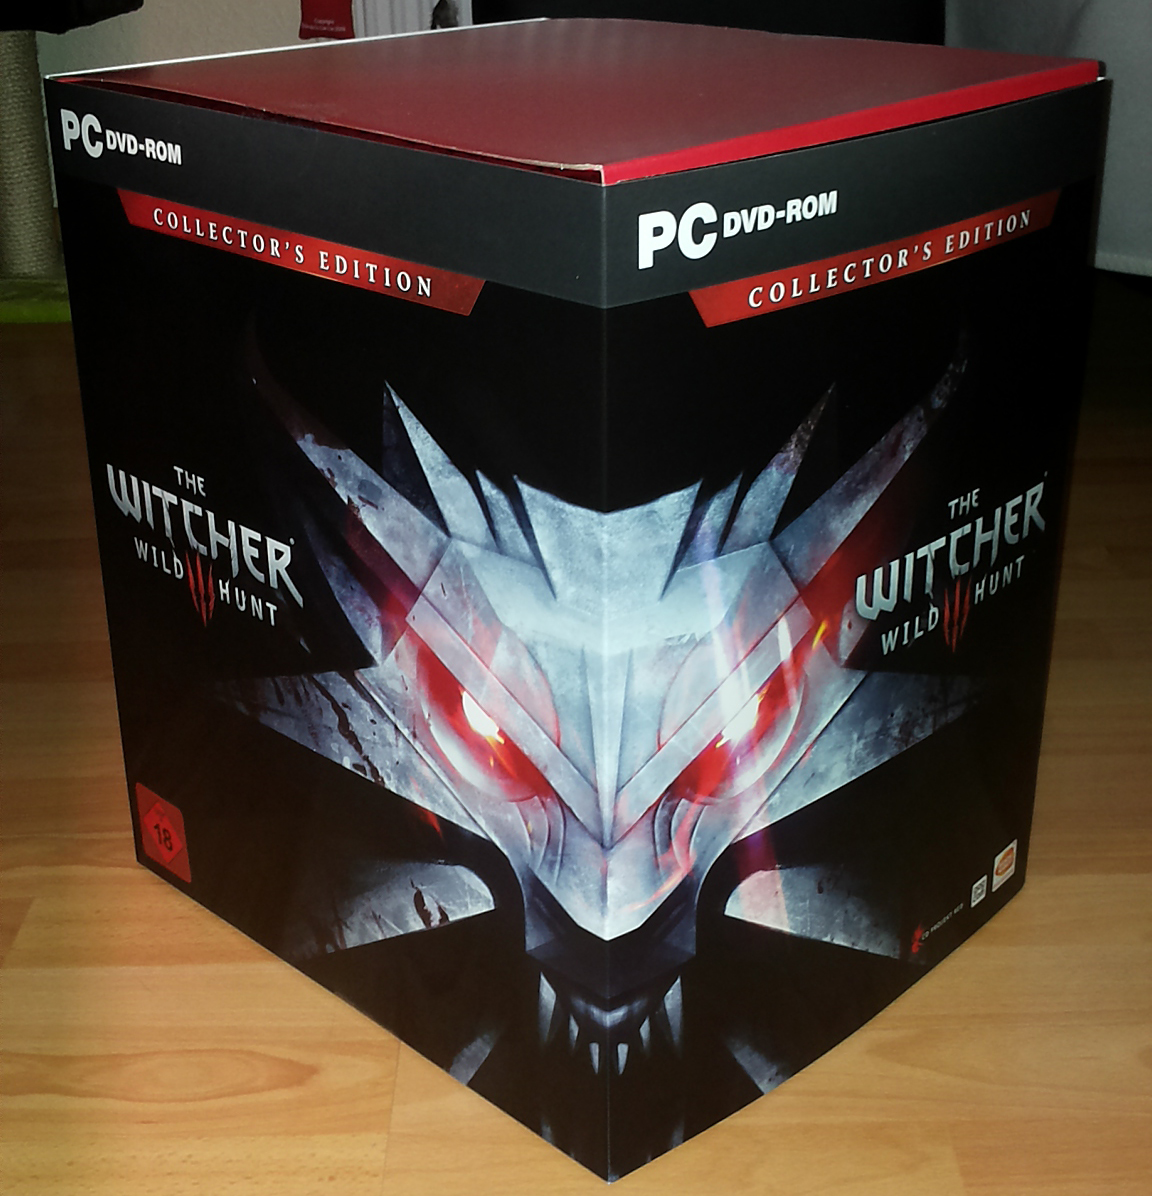 The Witcher 3 Collectors Edition: AWWWWW YISSSS